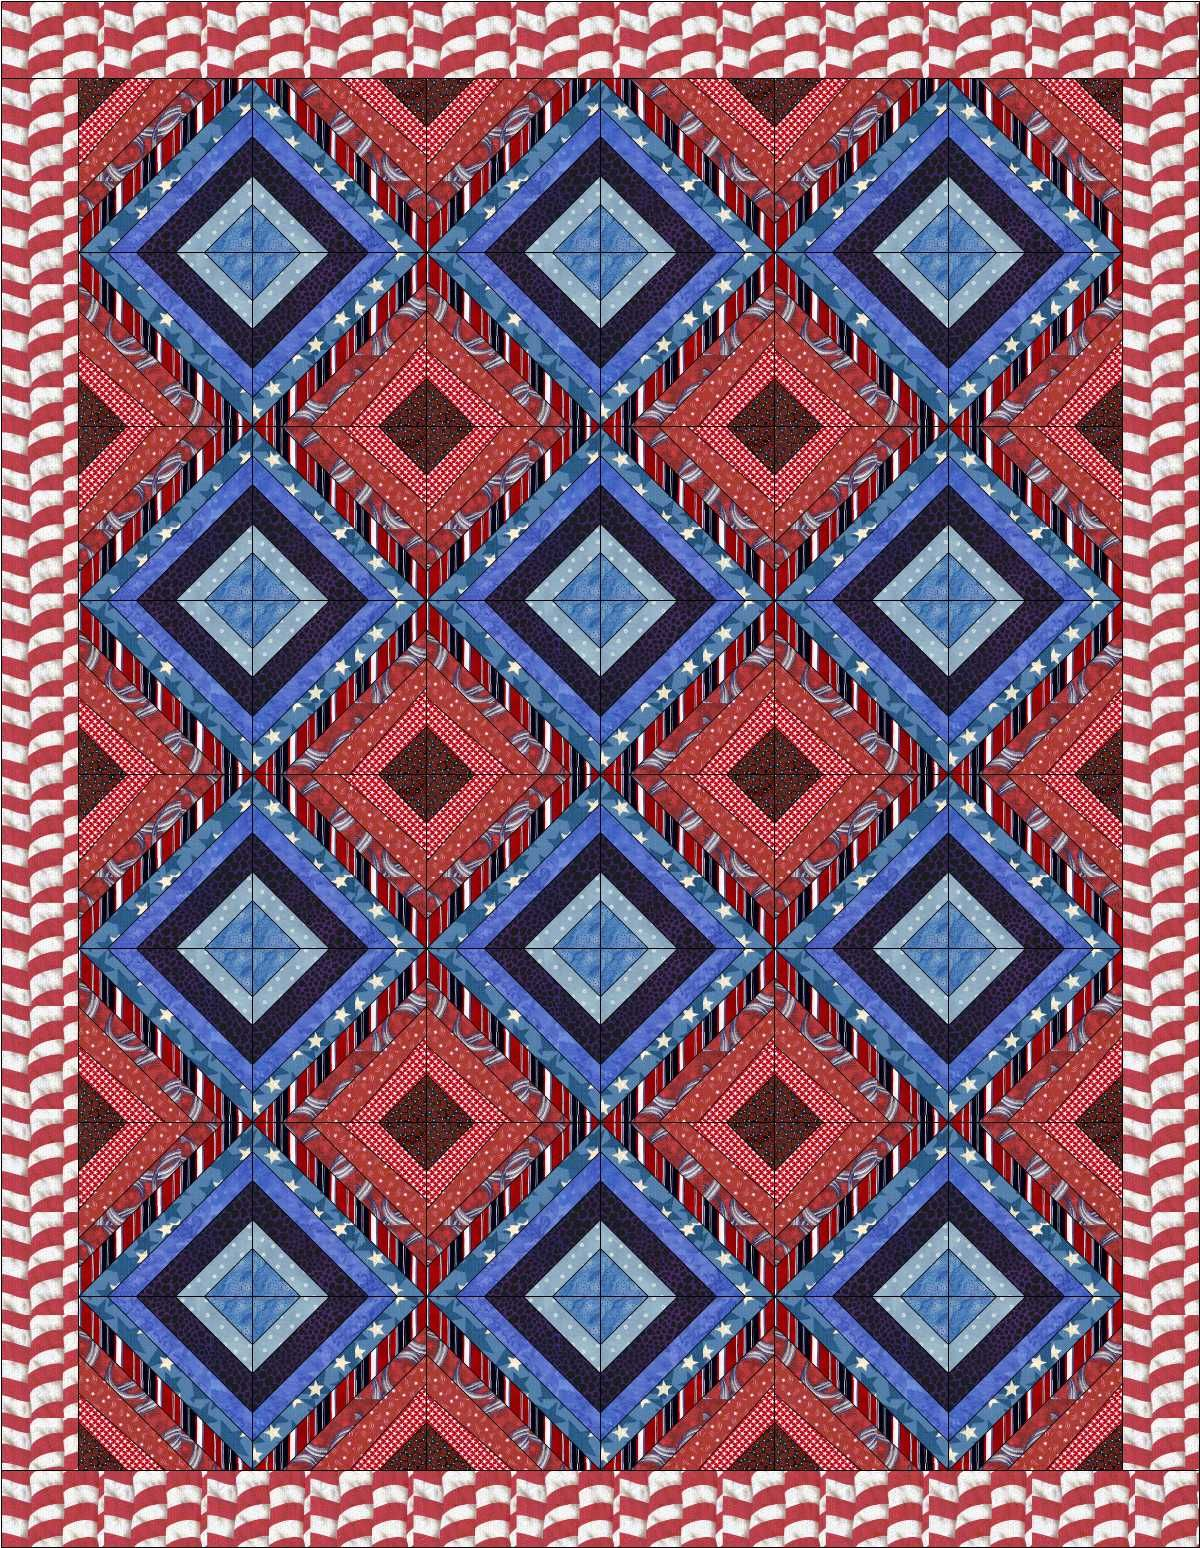 Quilts of Valor pattern | Quilting | Pinterest | Patriotic quilts